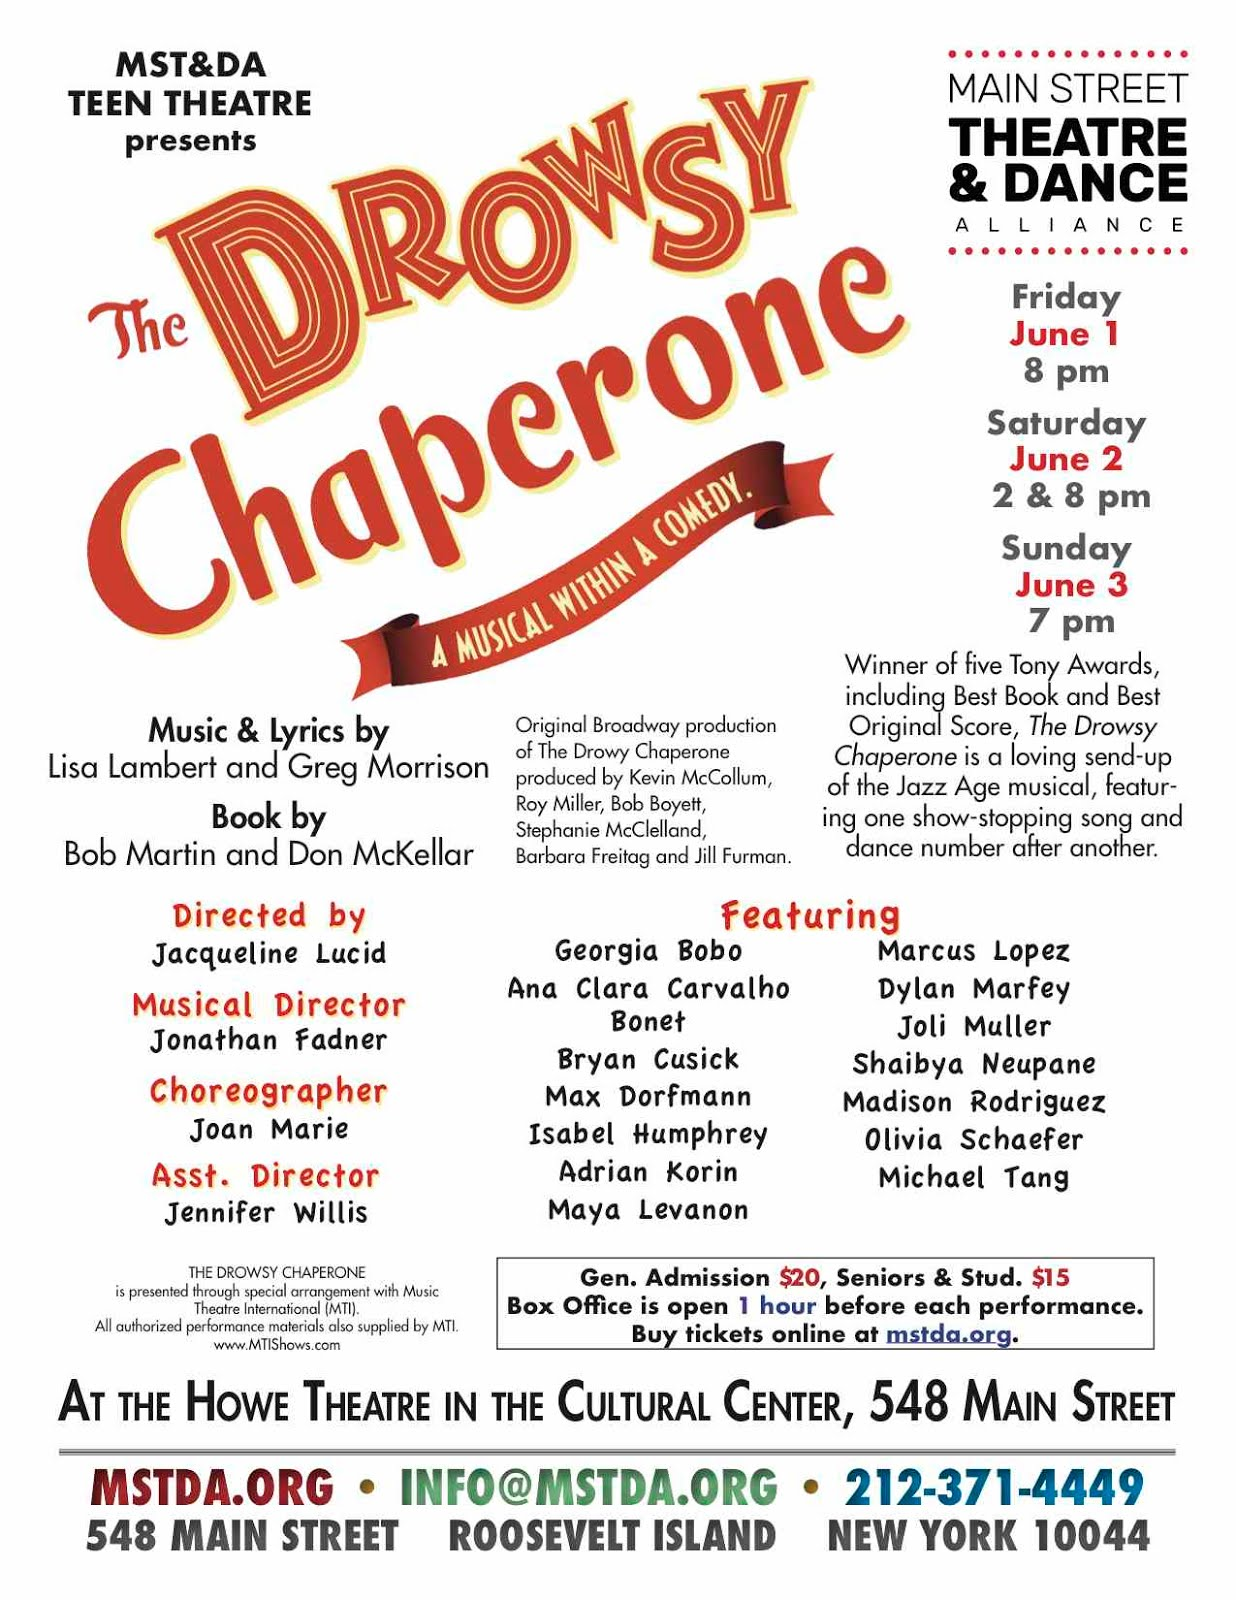 MST&DA Teen Theatre Presents The Drowsy Chaperone, A Musical Within A Comedy